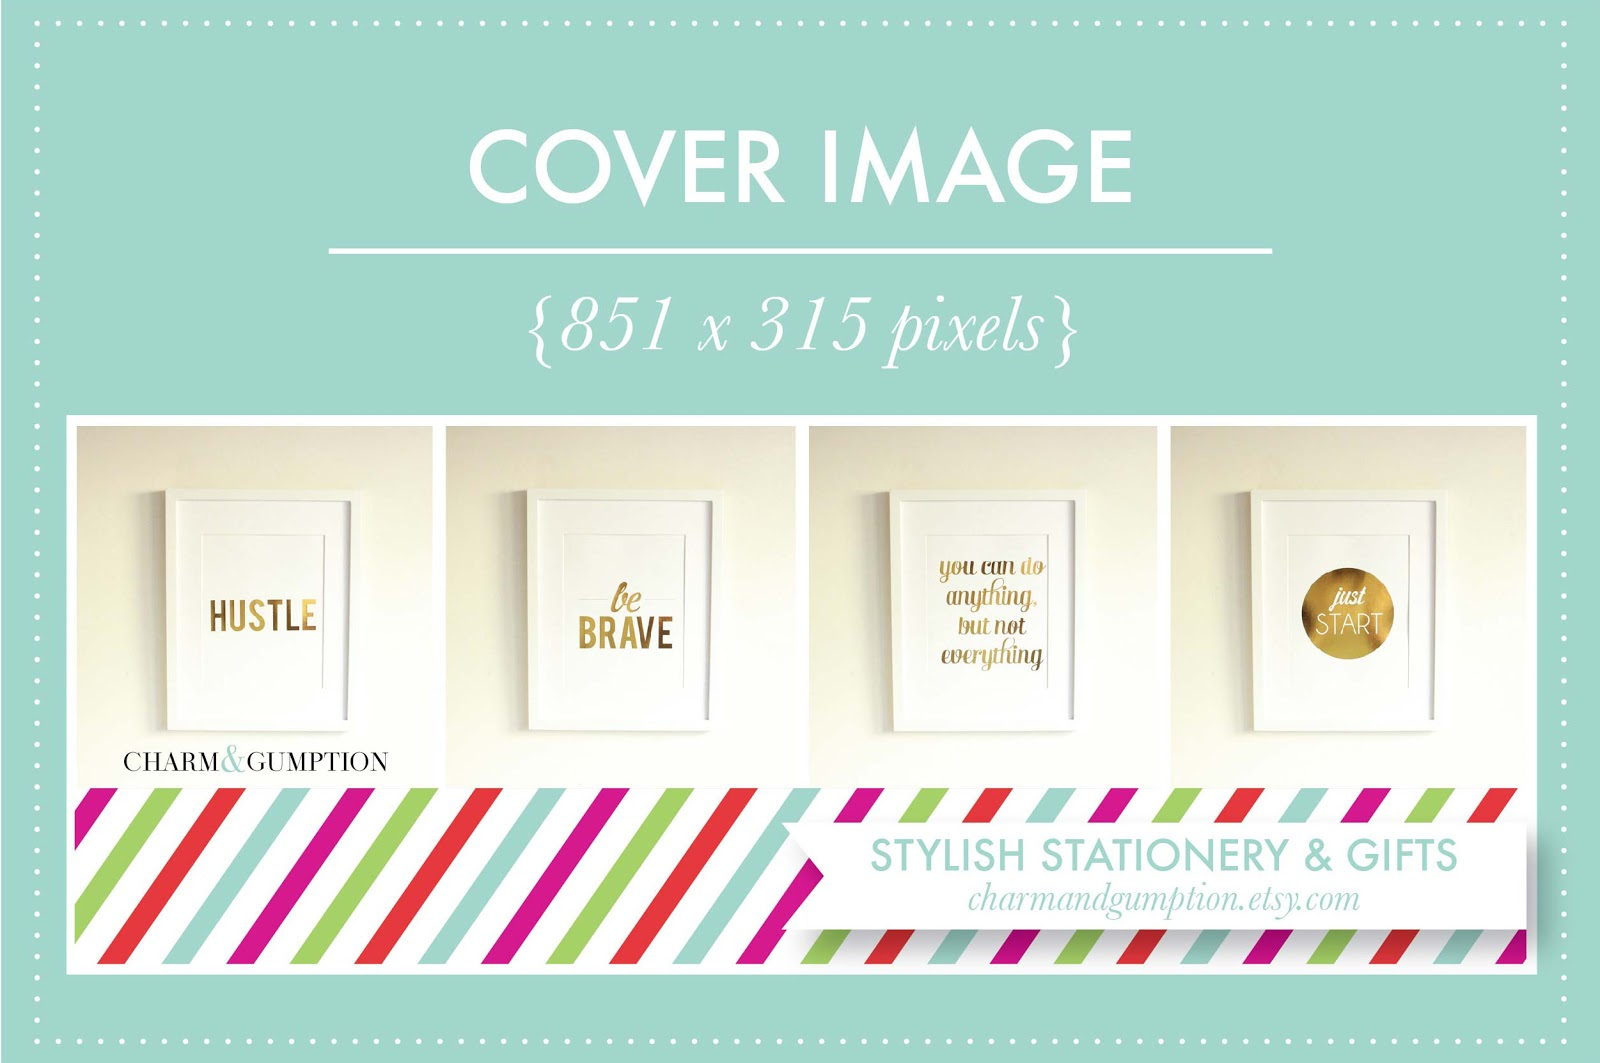 How To Do A Cover Page Now That The Facebook Profile Photo Changes To 160X160 This Will .